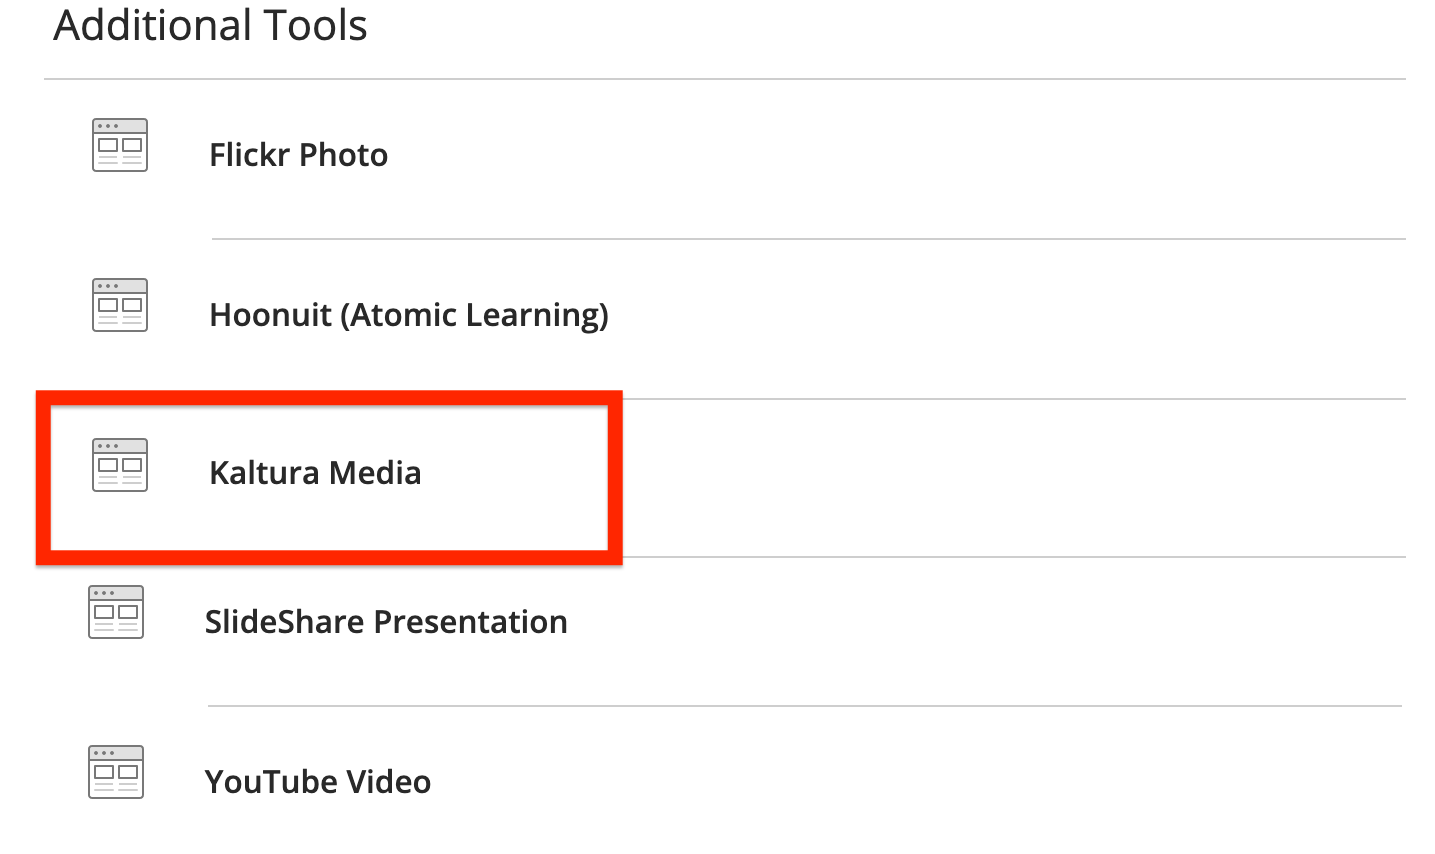 in the additional tools section, select kaltura media